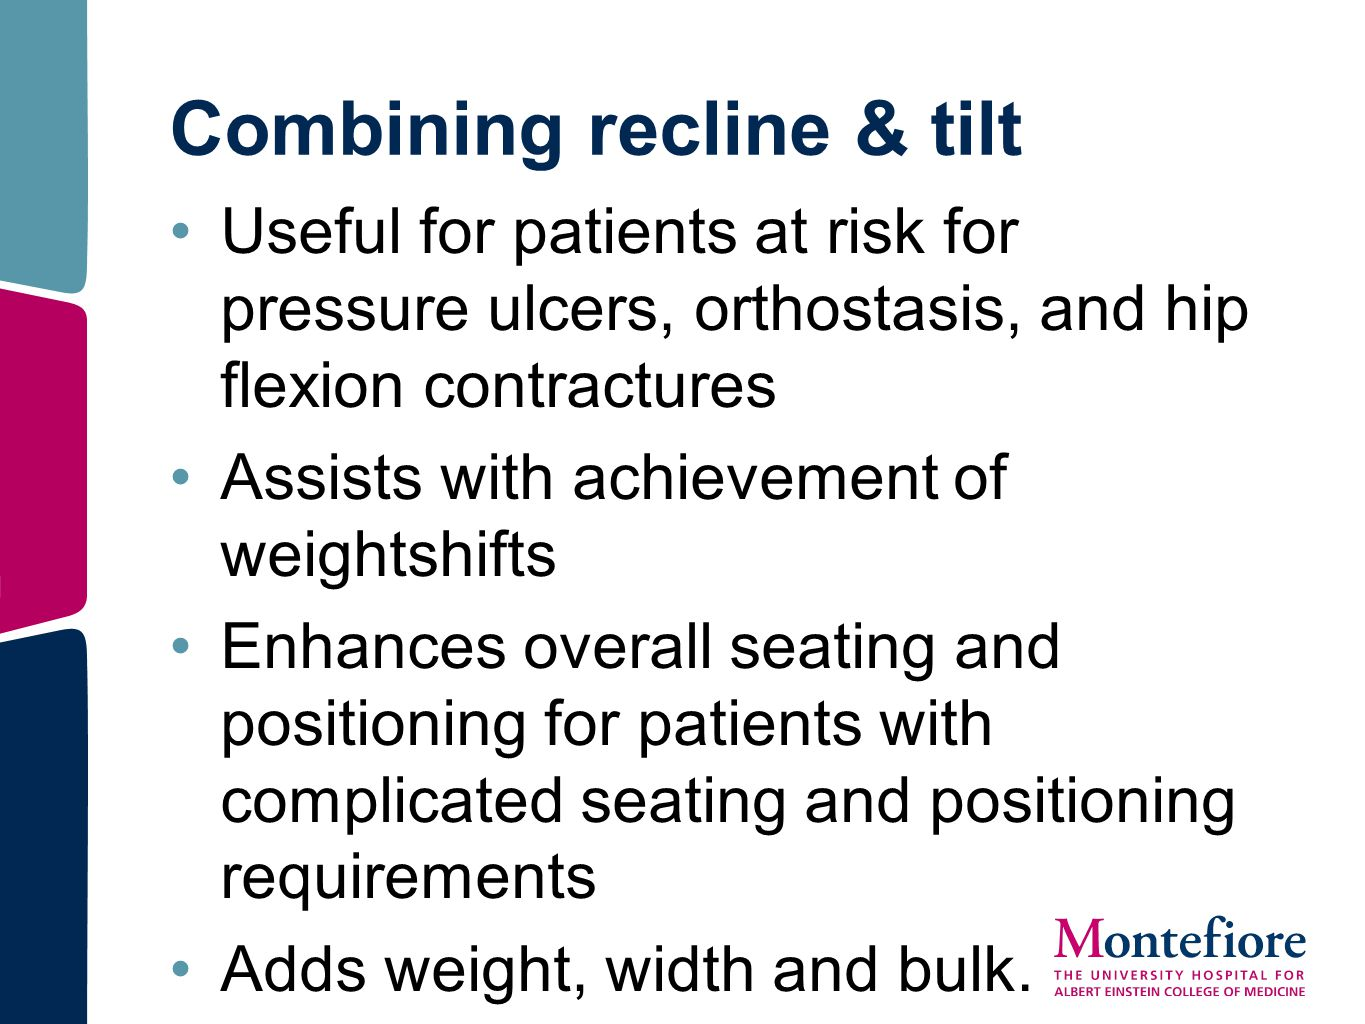 Combining recline & tilt Useful for patients at risk for pressure ulcers, orthostasis, and hip flexion contractures Assists with achievement of weight